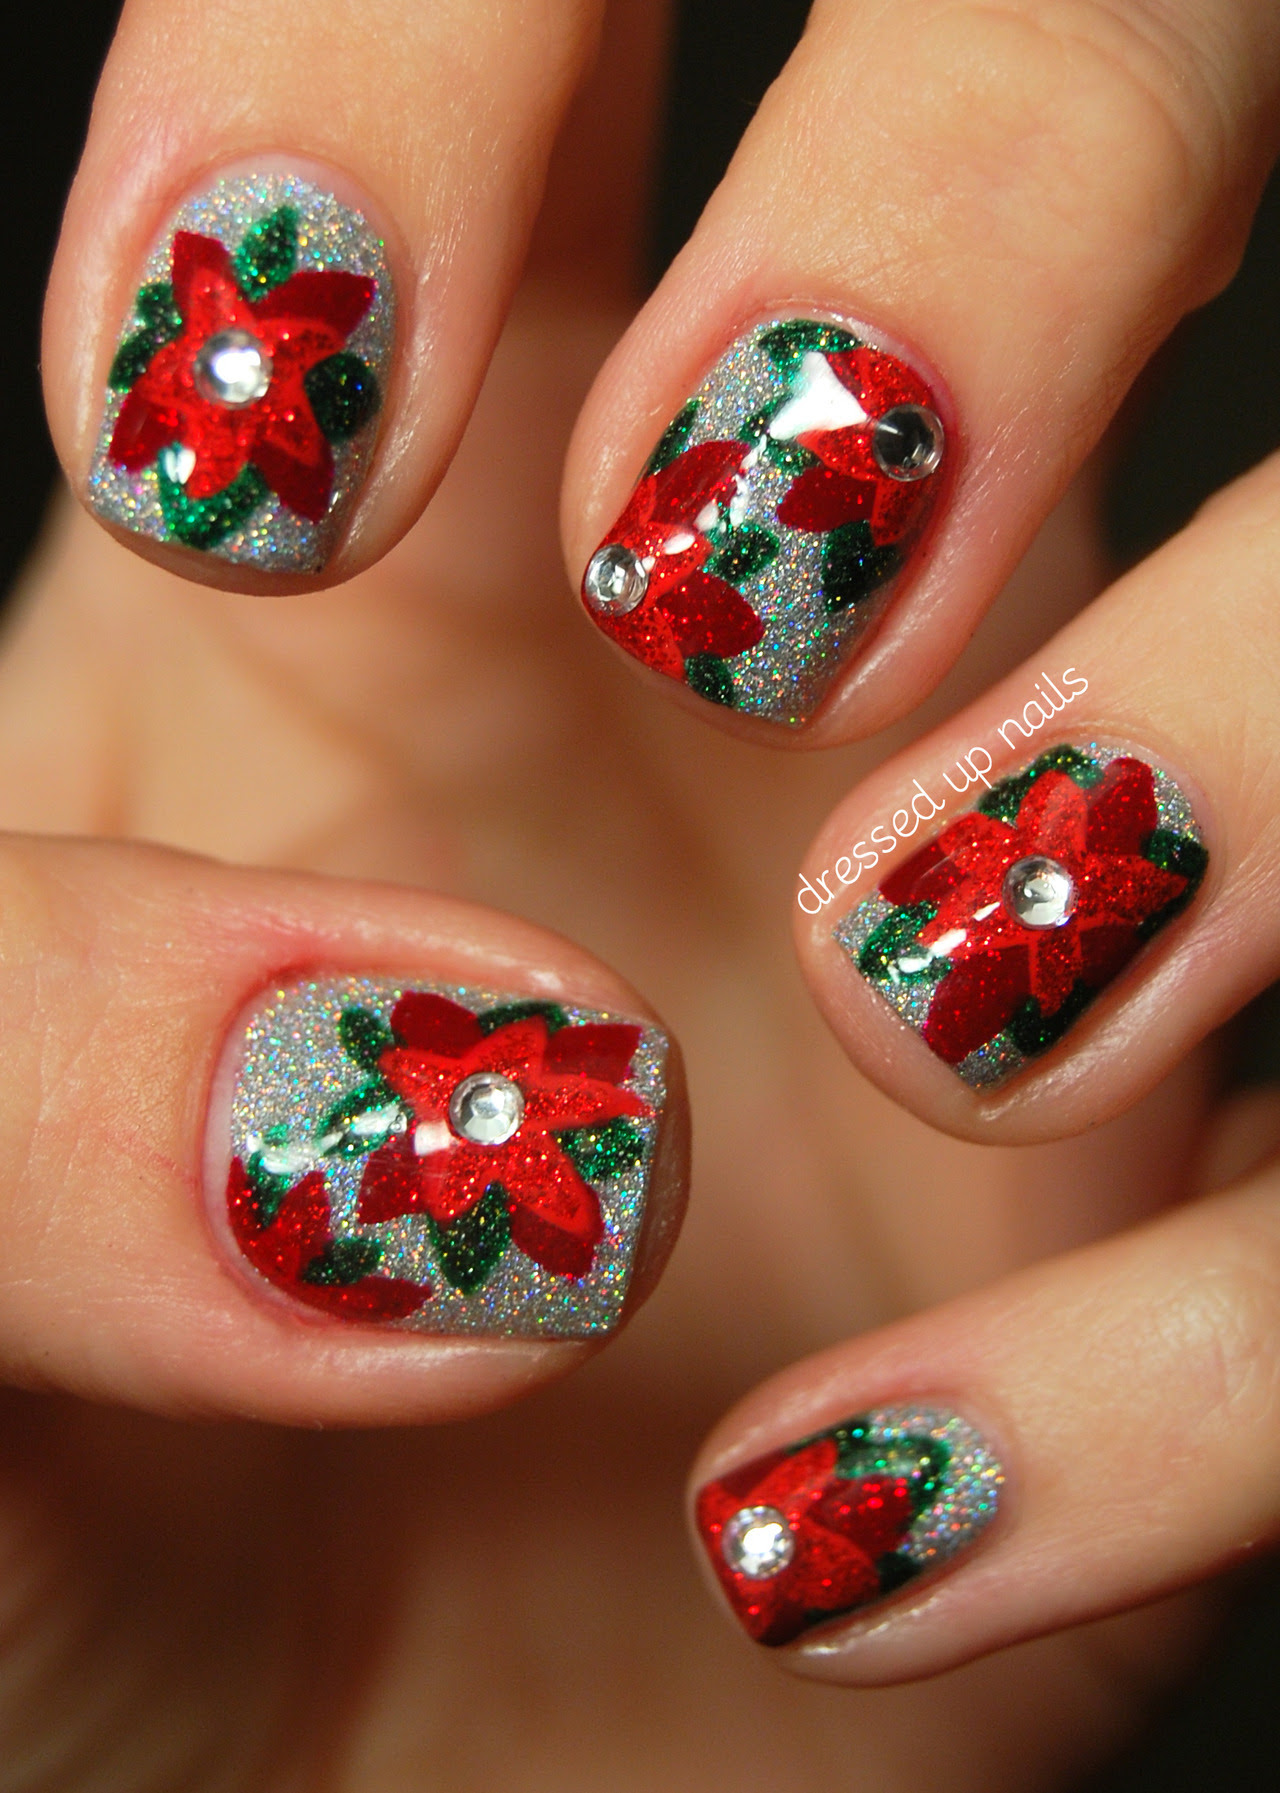 dressedupnails:  Today I have my first holiday nails to show y'all! I just joined a nail art group that posts a week's worth of nails each month relating to a specific theme and this month's theme is (of course) FESTIVENESS! So I hope y'all are ready for five sweet (and GLITTERY) holiday-themed manis this week cuz I'm super pumped to show you them. I did these glittery poinsettia nails a couple weeks ago and it's been hard to wait to post them because I love them a lot… so much that I might re-do them for my actual Christmas nails. You can (AND SHOULD) go check out my blog post for more pictures and an explanation of how I did these! P.S. GLITTER!!! Facebook | Instagram @dressedupnails